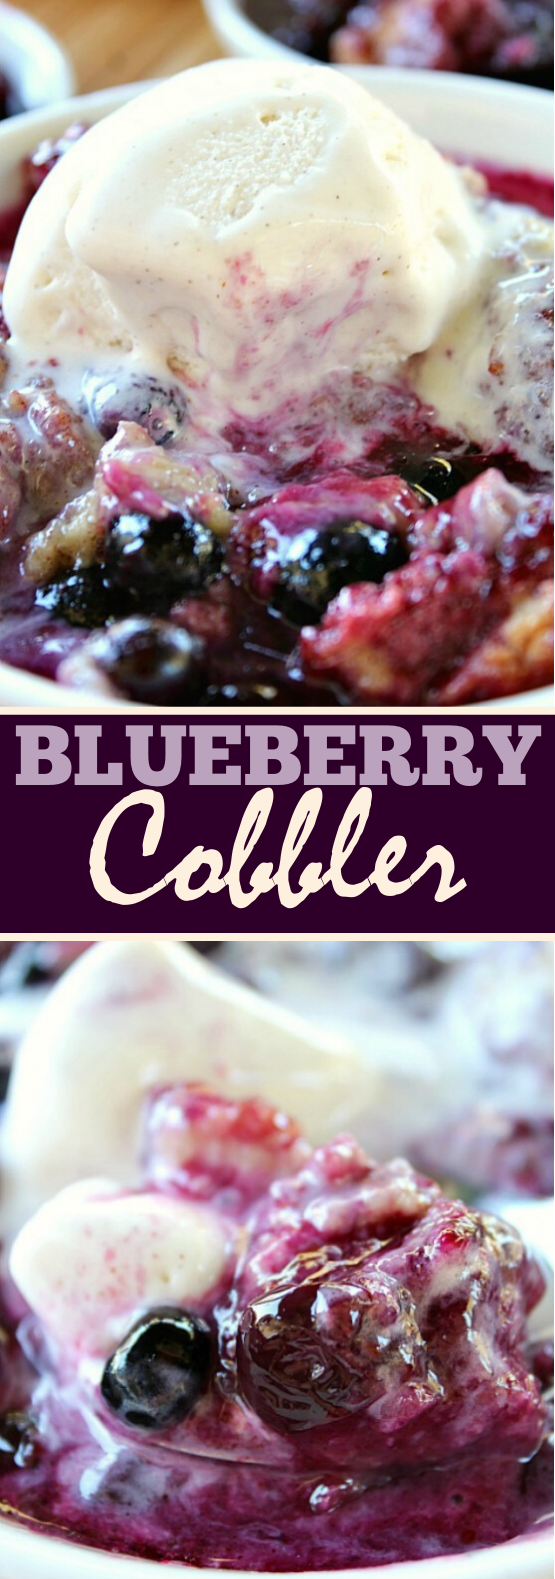 Blueberry Cobbler #desserts #easy #blueberry #baking #sweettreat